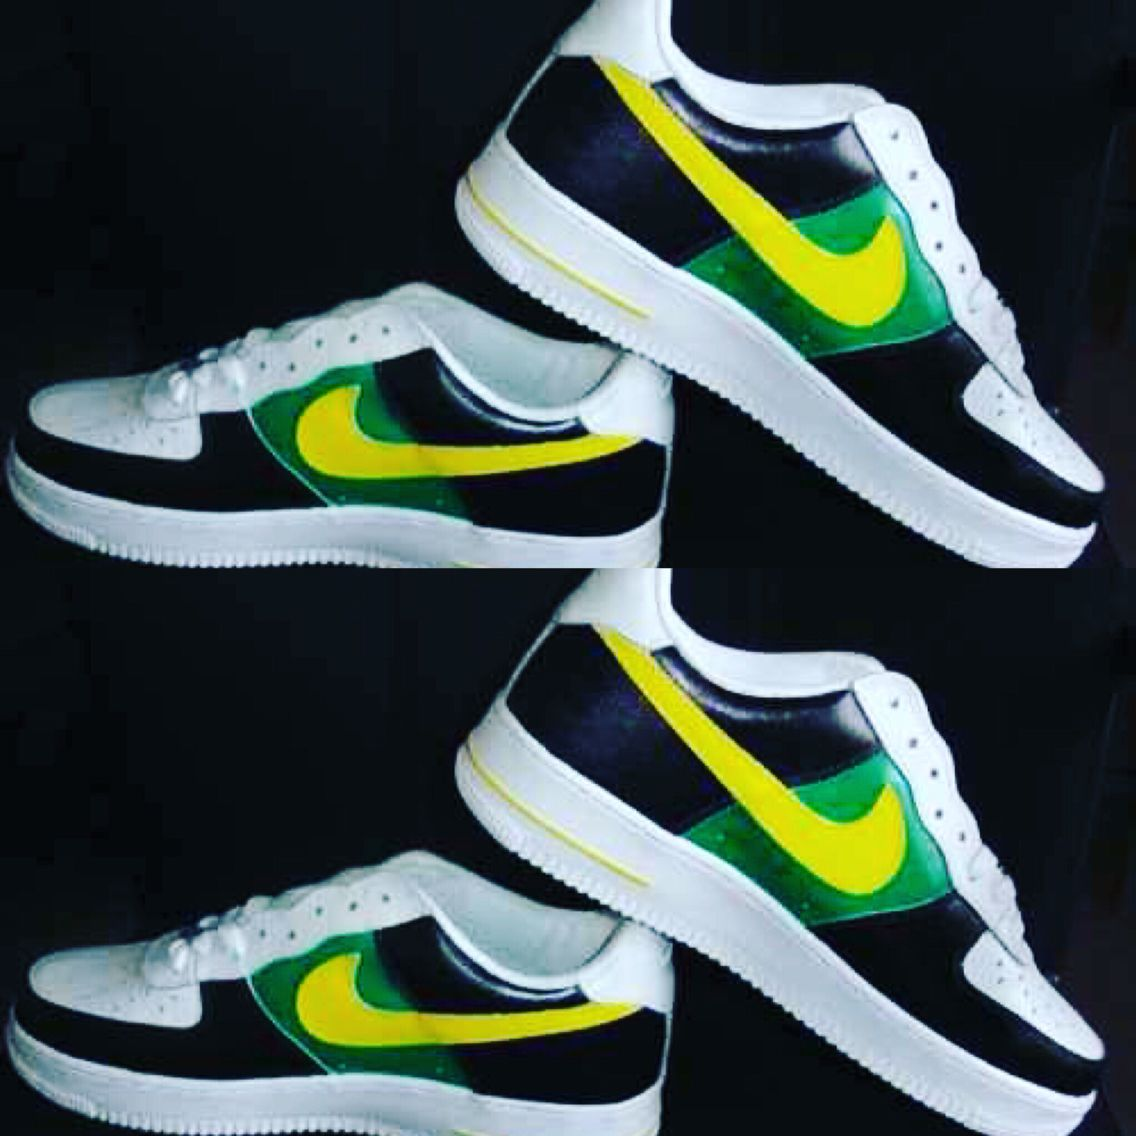 #customshoe #nikeairforce1low shoe comes with purchase receipt from foot locker✅